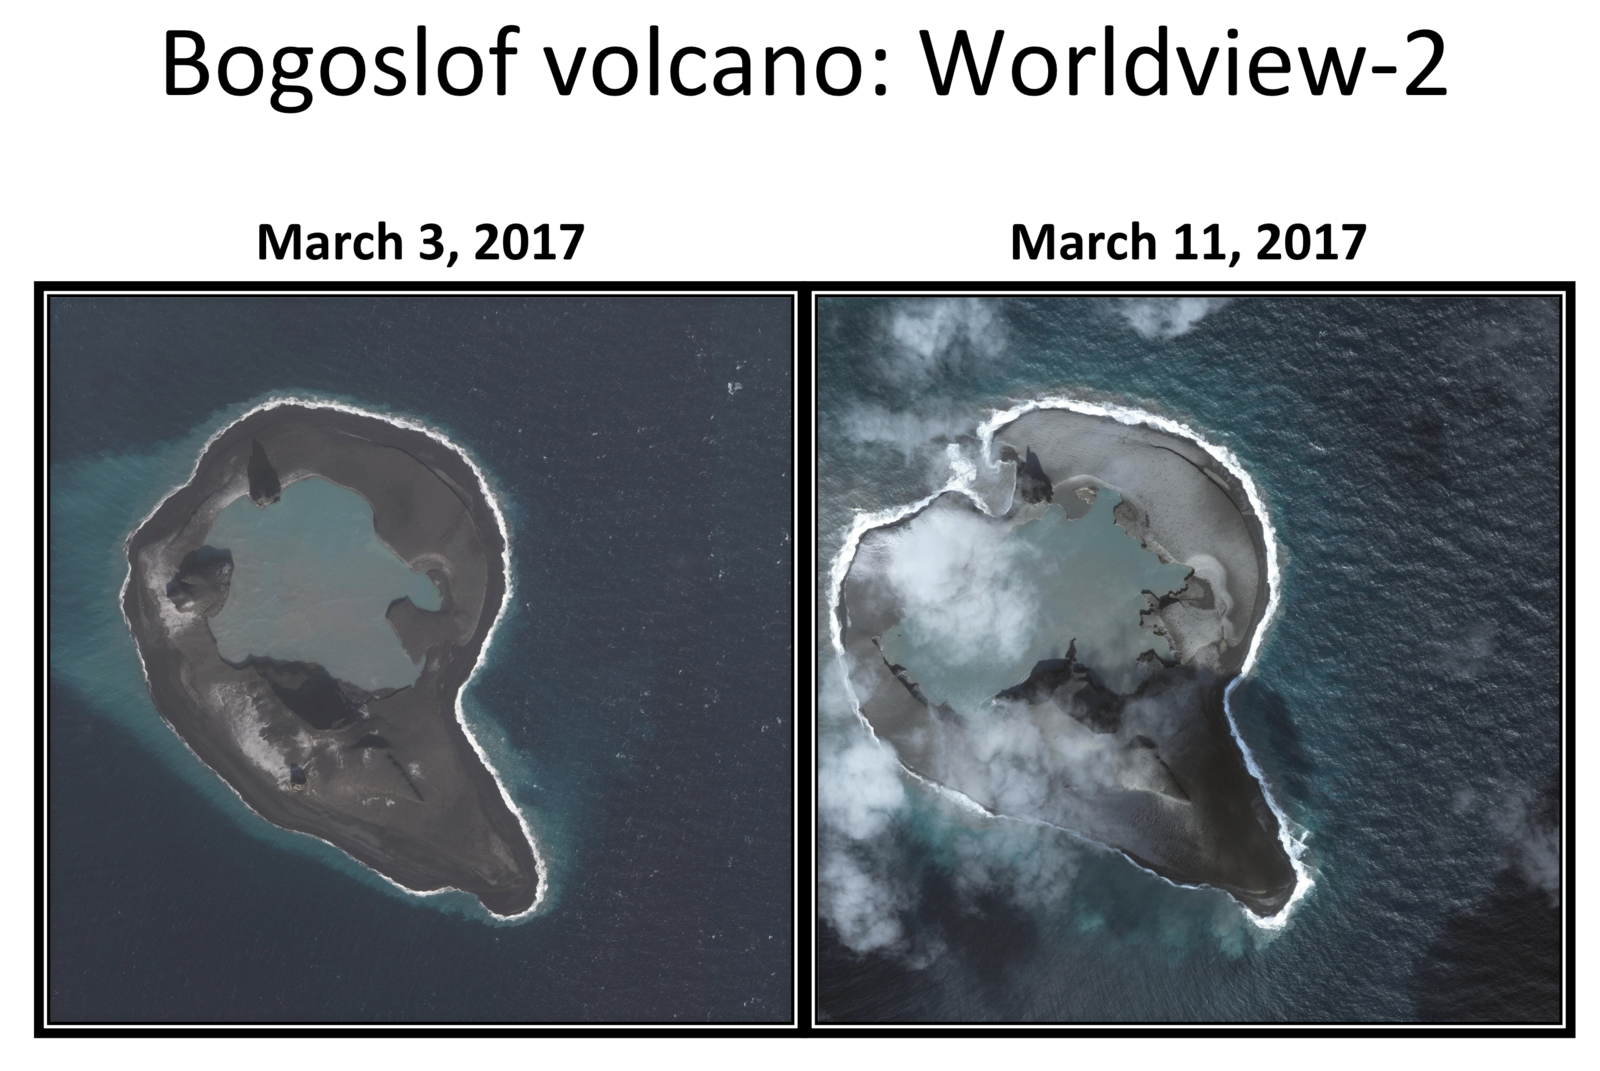 Bogosmlof - Evolution morphologique entre le 3 et le 11 mars 2017 -  un clic pour agrandir - photo Dave Schneider / AVO / Worlview 2 sat  Image data provided under Digital Globe NextView License.